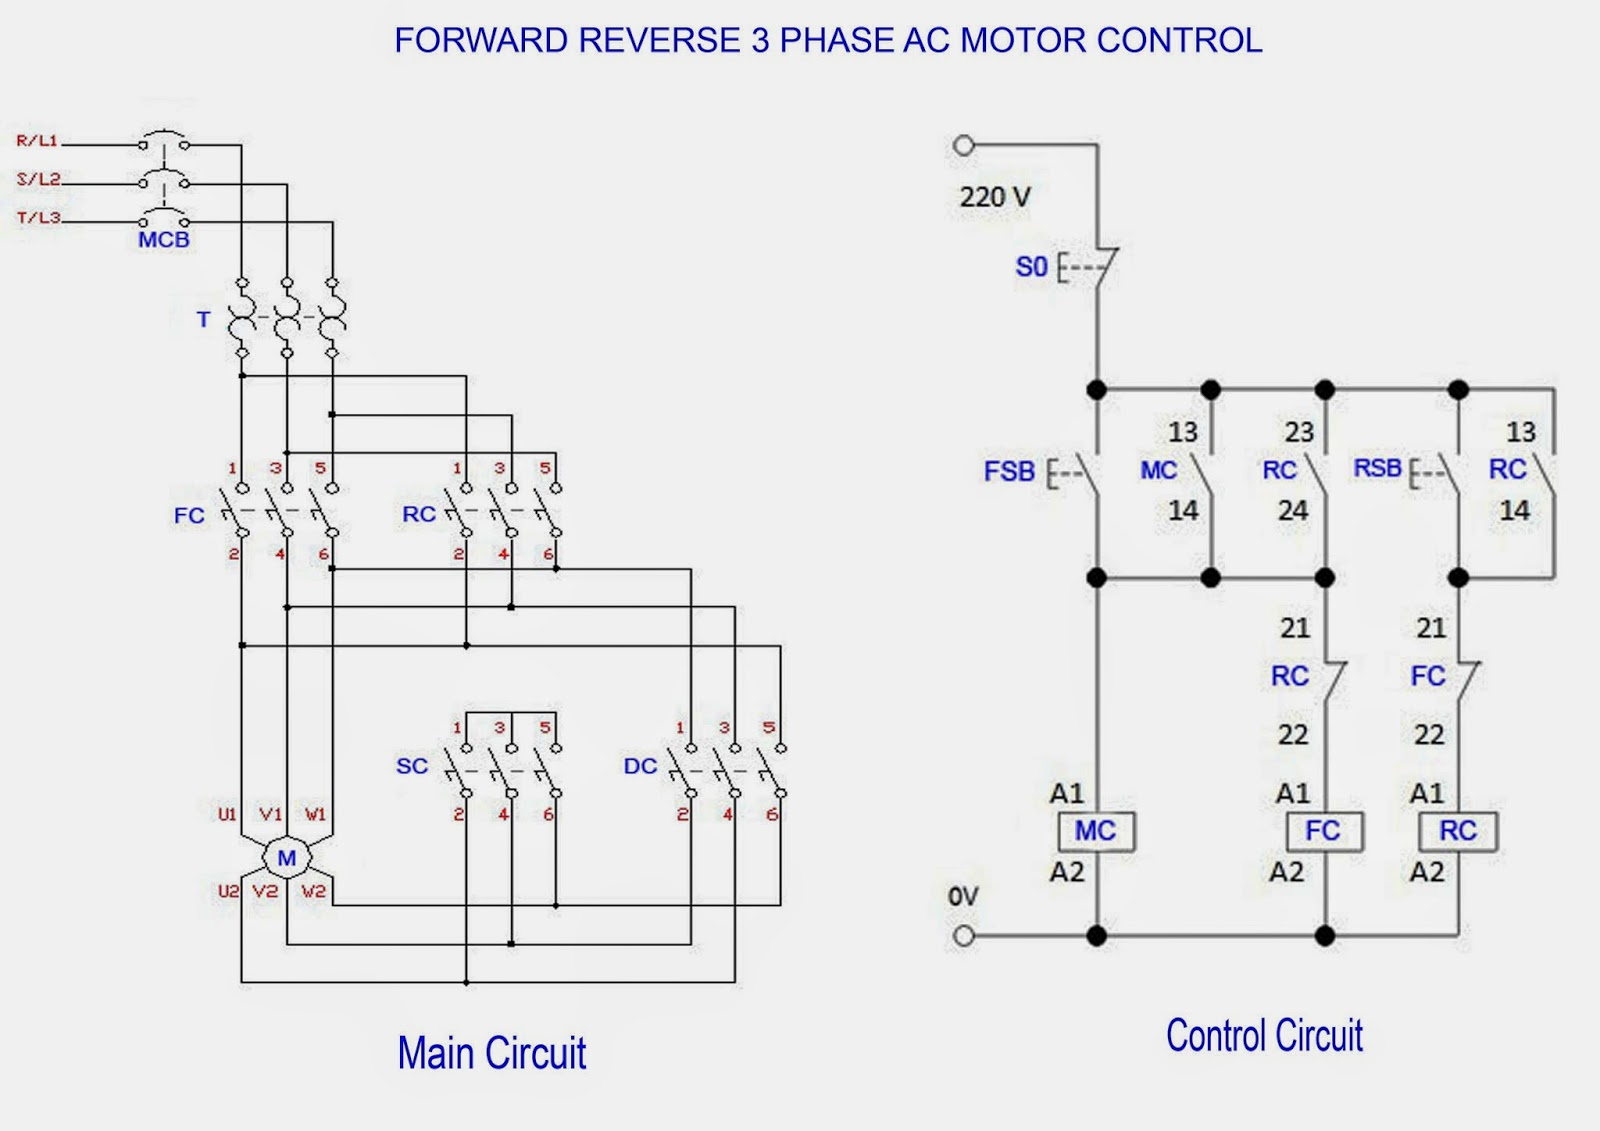 wiring diagram for forward reverse single phase motor with Dc Contactor Wiring on Reversing The Rotation Of A Three Phase Induction Motor Wiring Diagram 3 Phase Motor 9 Leads 21 in addition Dc Contactor Wiring also Wiring Diagram Dol Starter Single Phase furthermore Lambretta Wiring Diagram With Indicators moreover 110v Light Wiring Diagram.